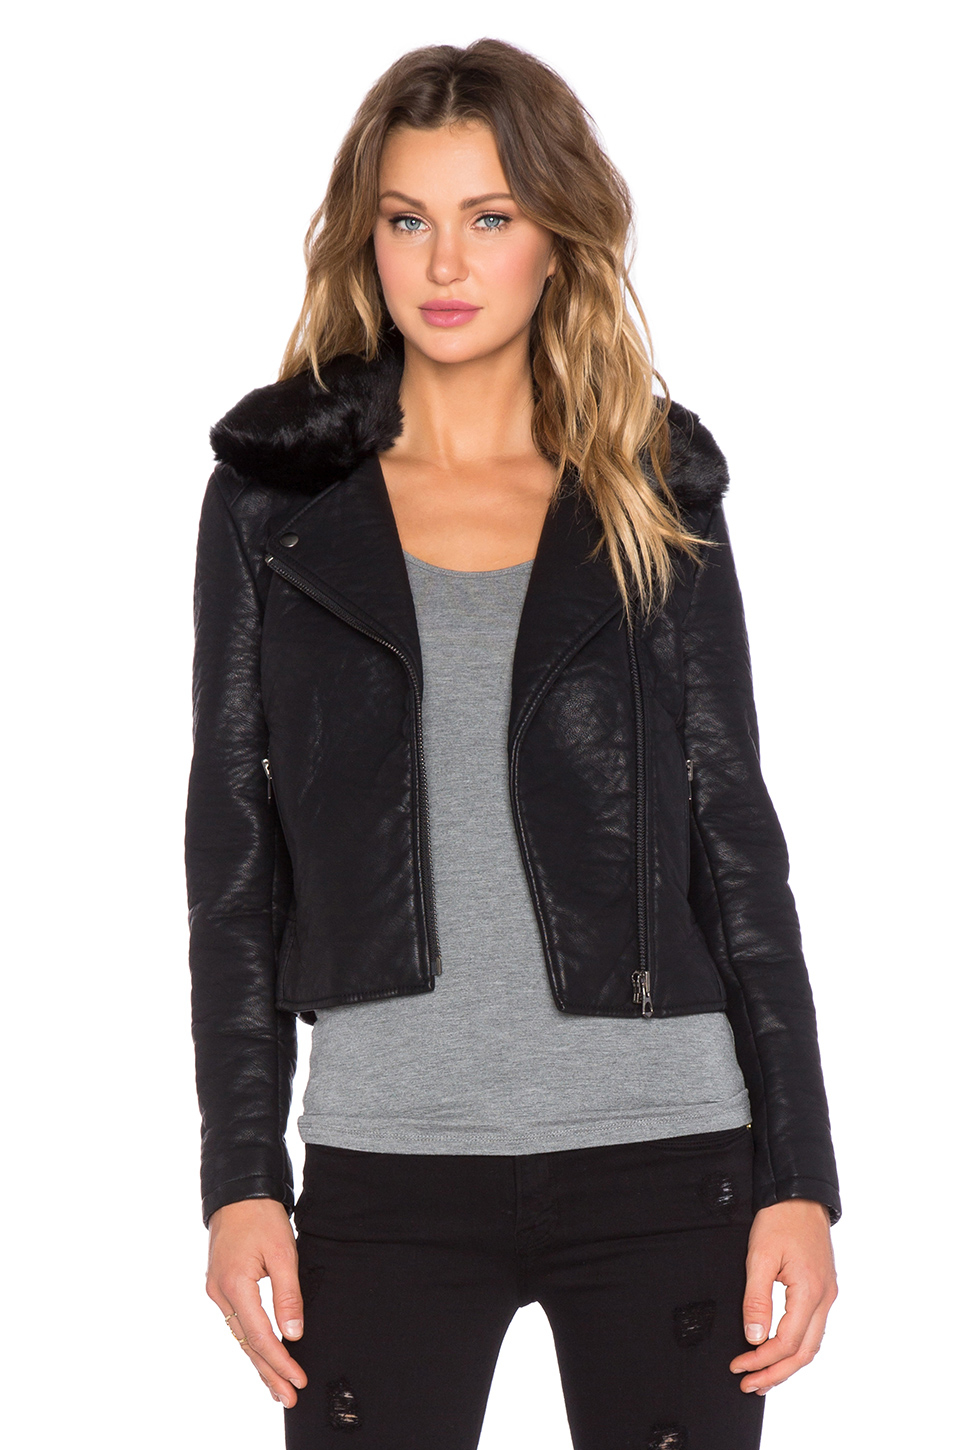 Black orchid Faux Leather Jacket With Faux Fur Collar in Black | Lyst